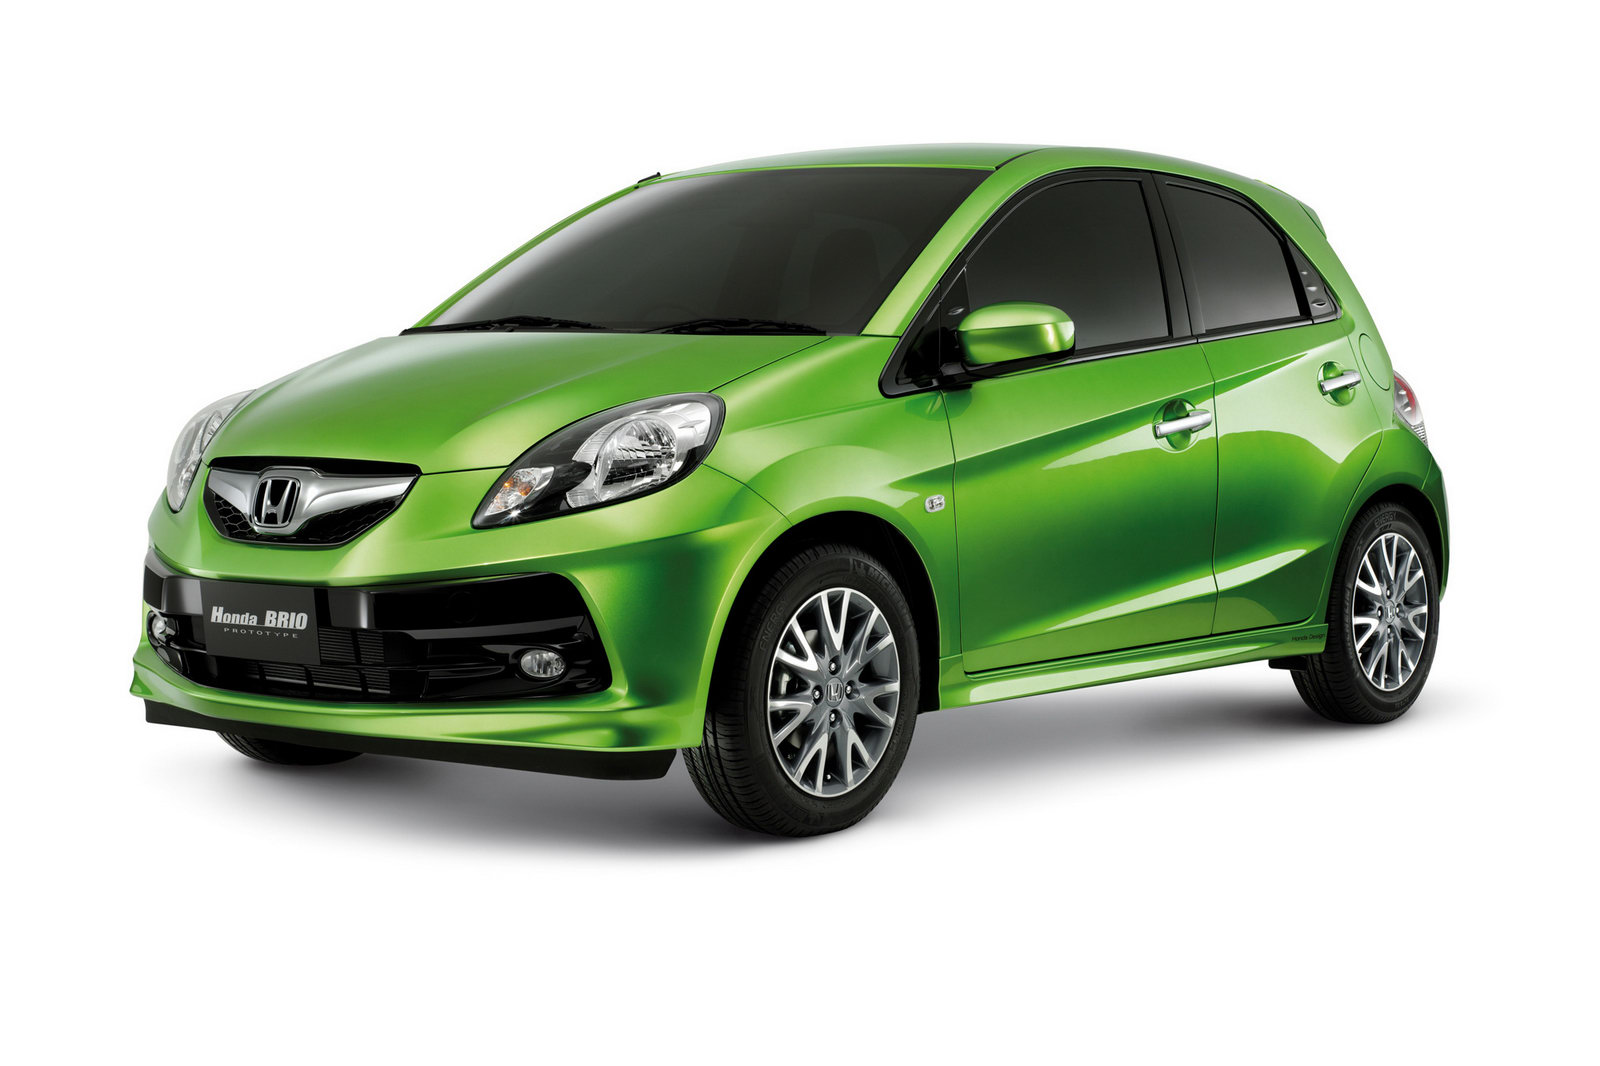 Honda Brio – Features, Engine Specifications, Mileage, Test Drive Review & Pictures